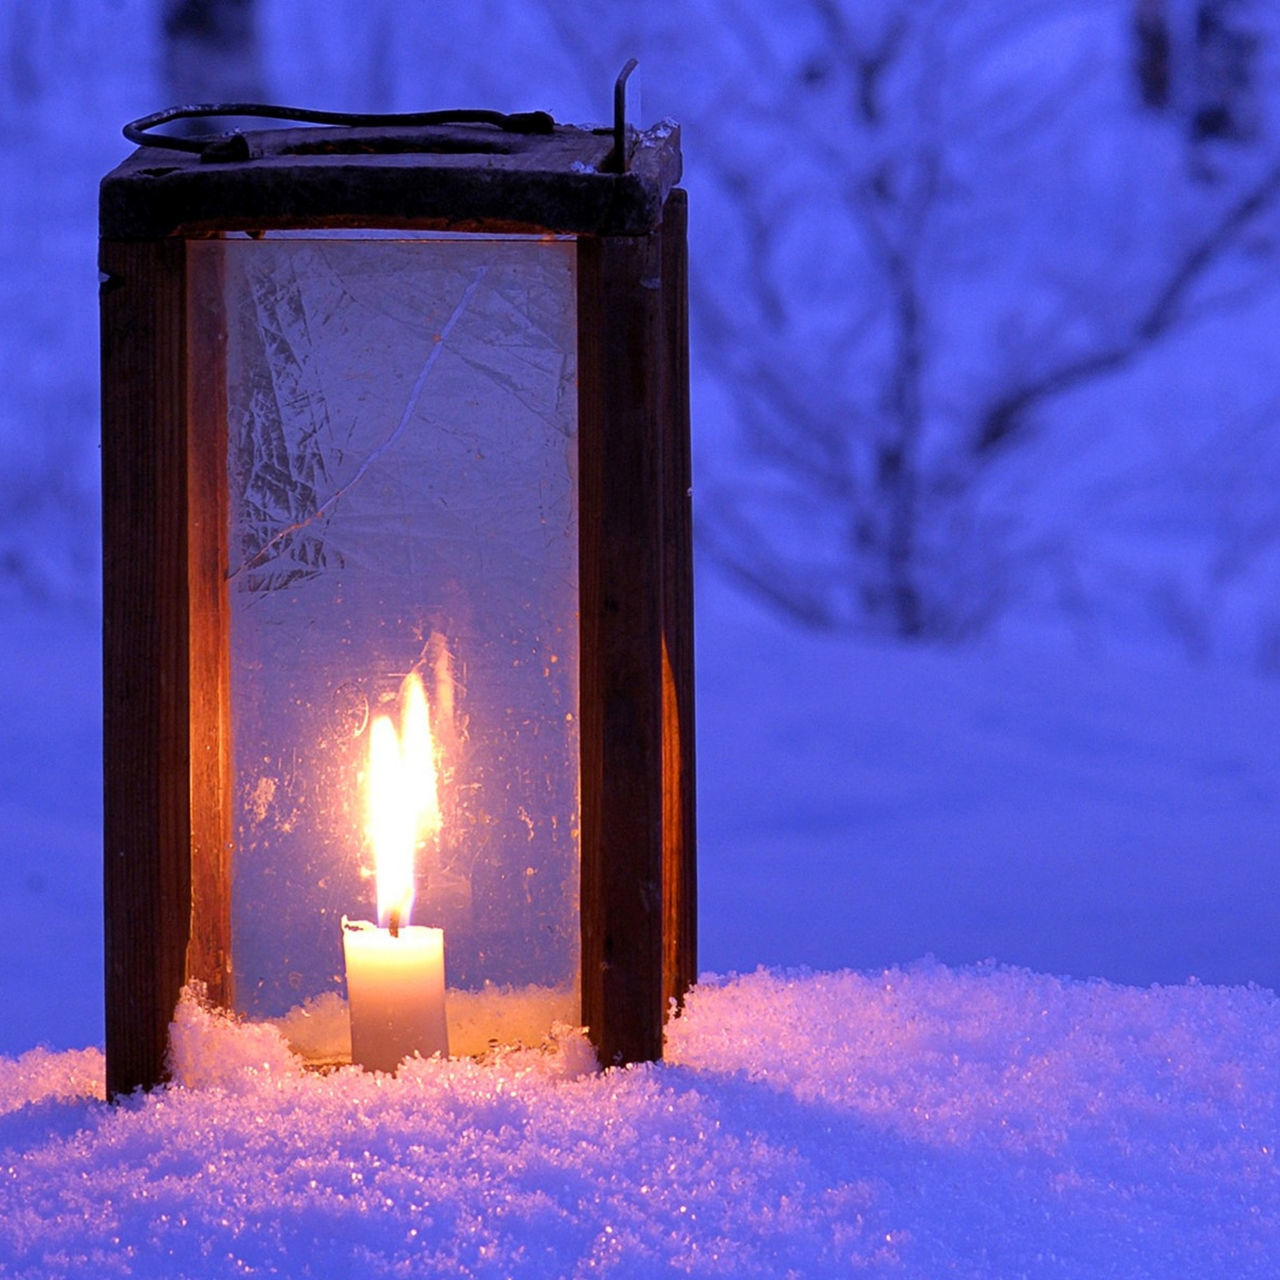 CLOSE-UP OF BURNING CANDLE ON SNOW